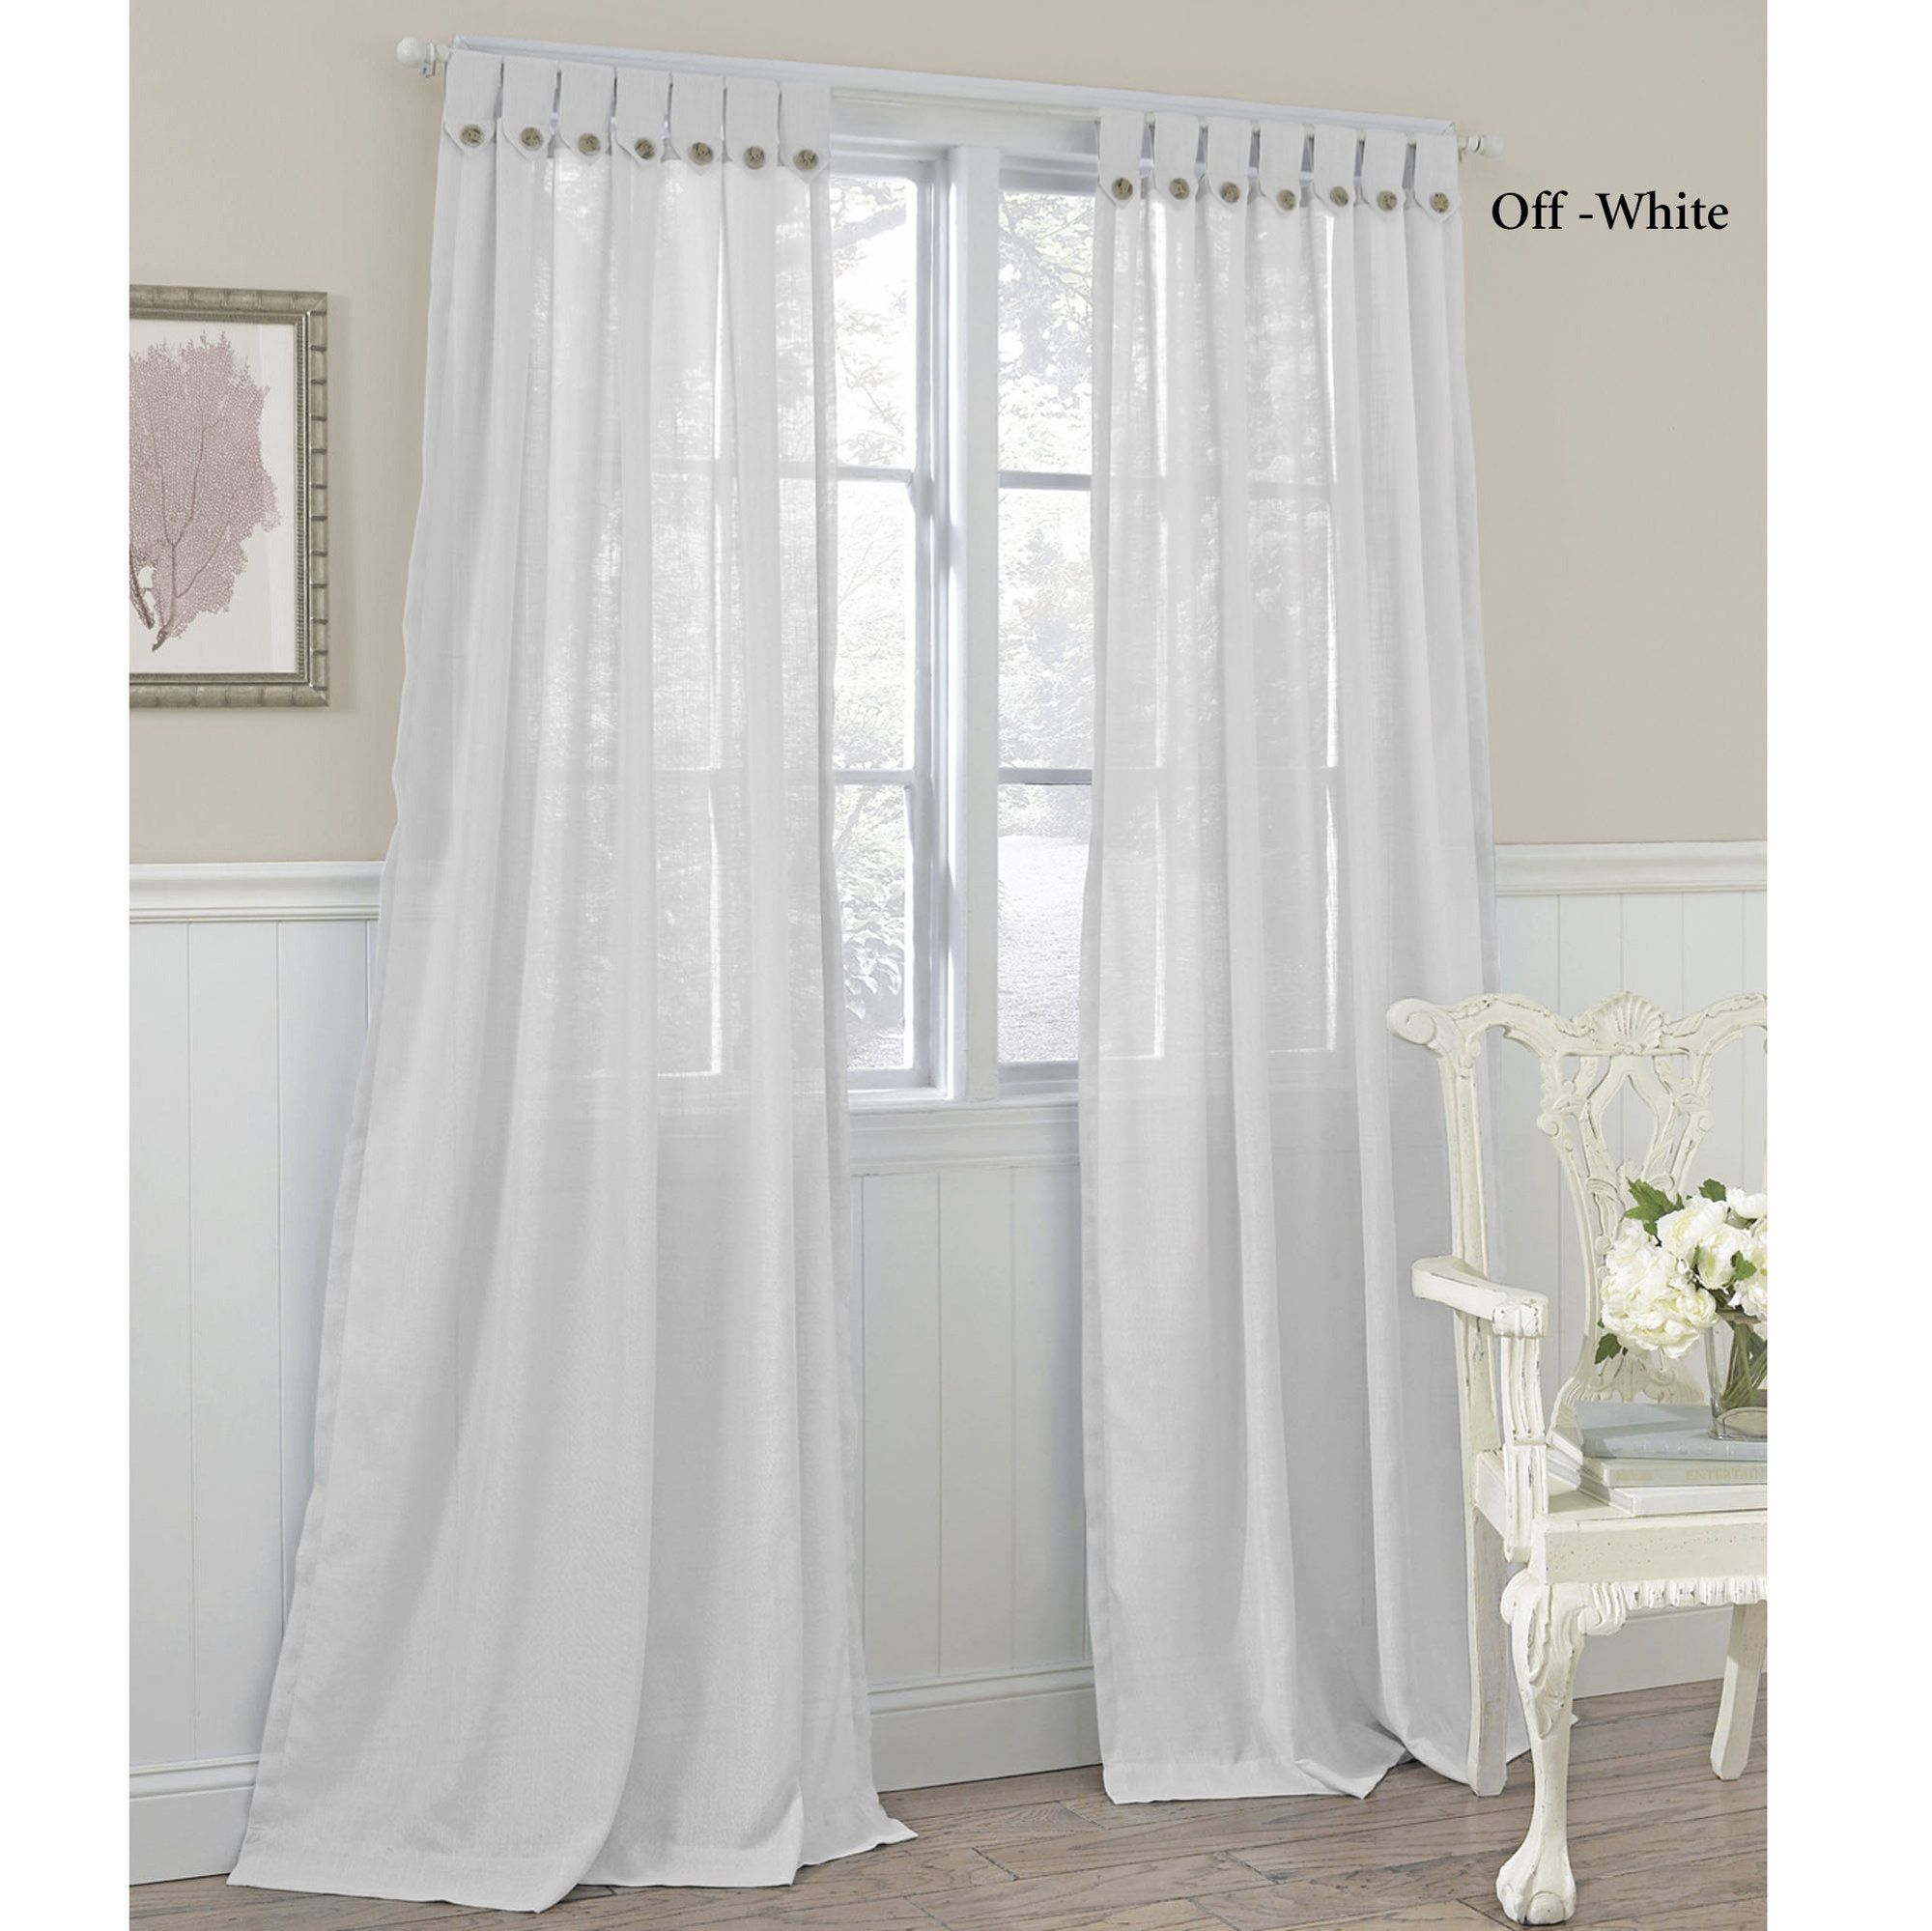 17 best images about curtains on pinterest set of arched window curtains and grey